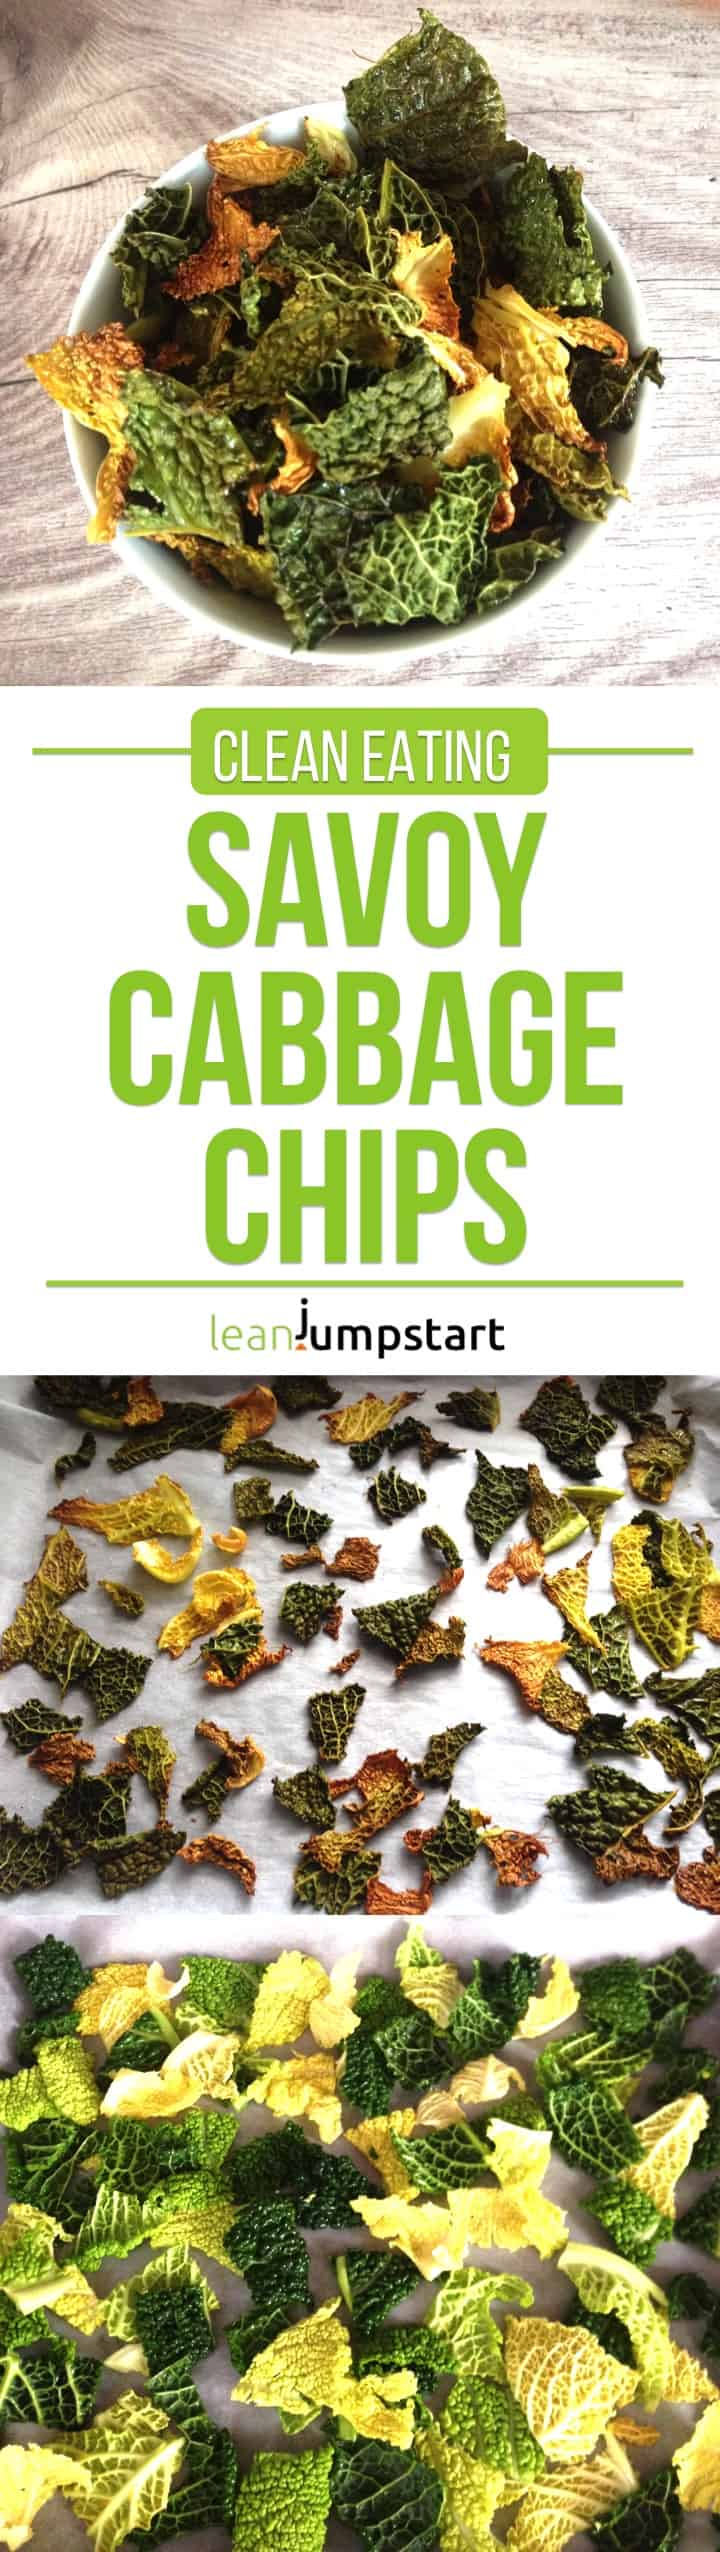 Savoy Cabbage Chips: Super Tasty, Crispy & Easy Clean Eating Snack #savoycabbage #cabbagechips #eatclean